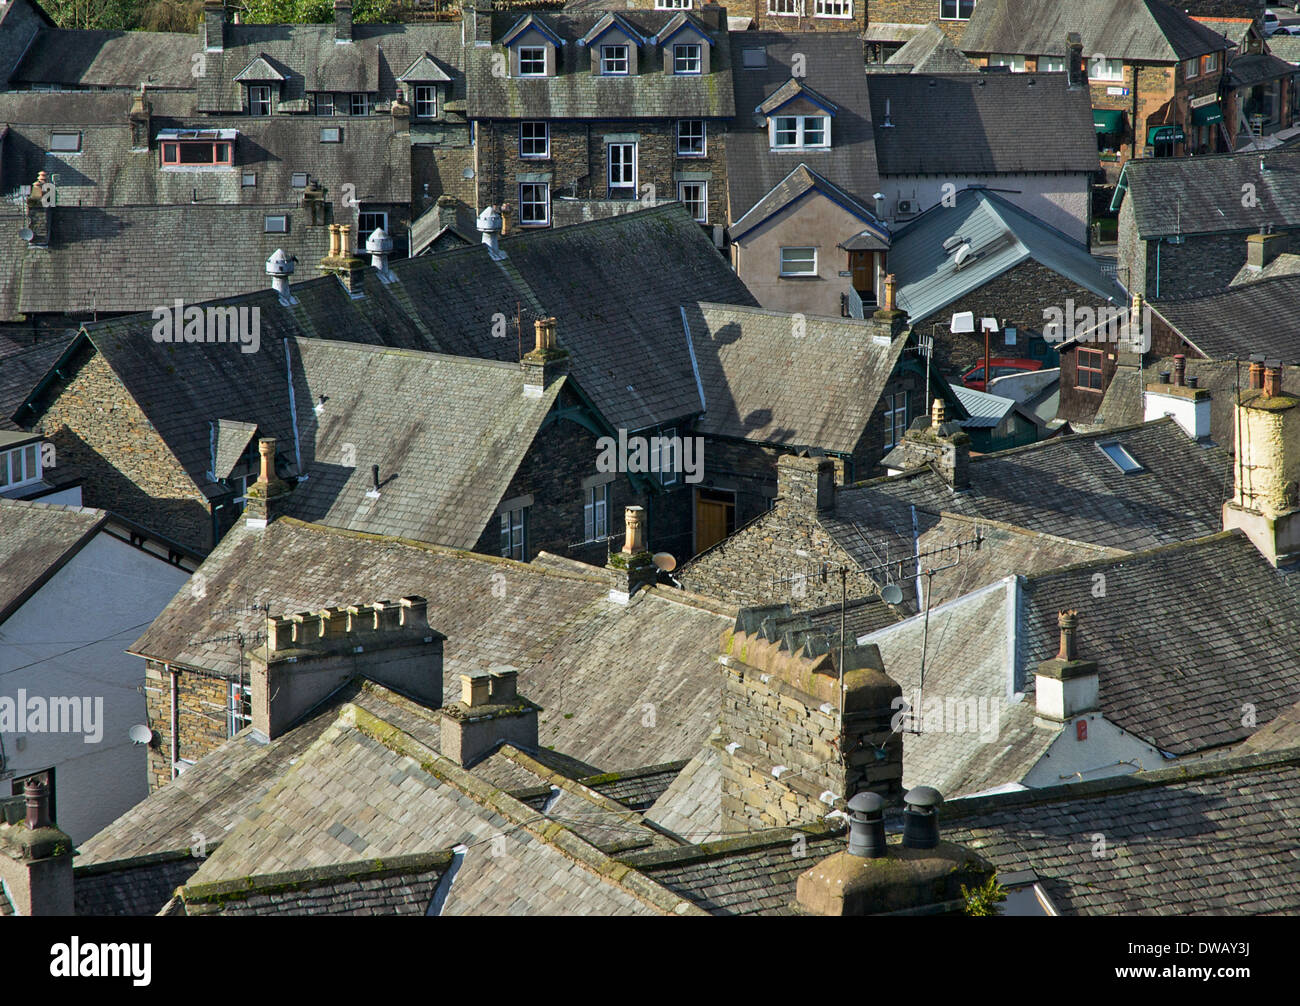 The rooftops of Ambleside, Lake District National Park, Cumbria, England UK - Stock Image